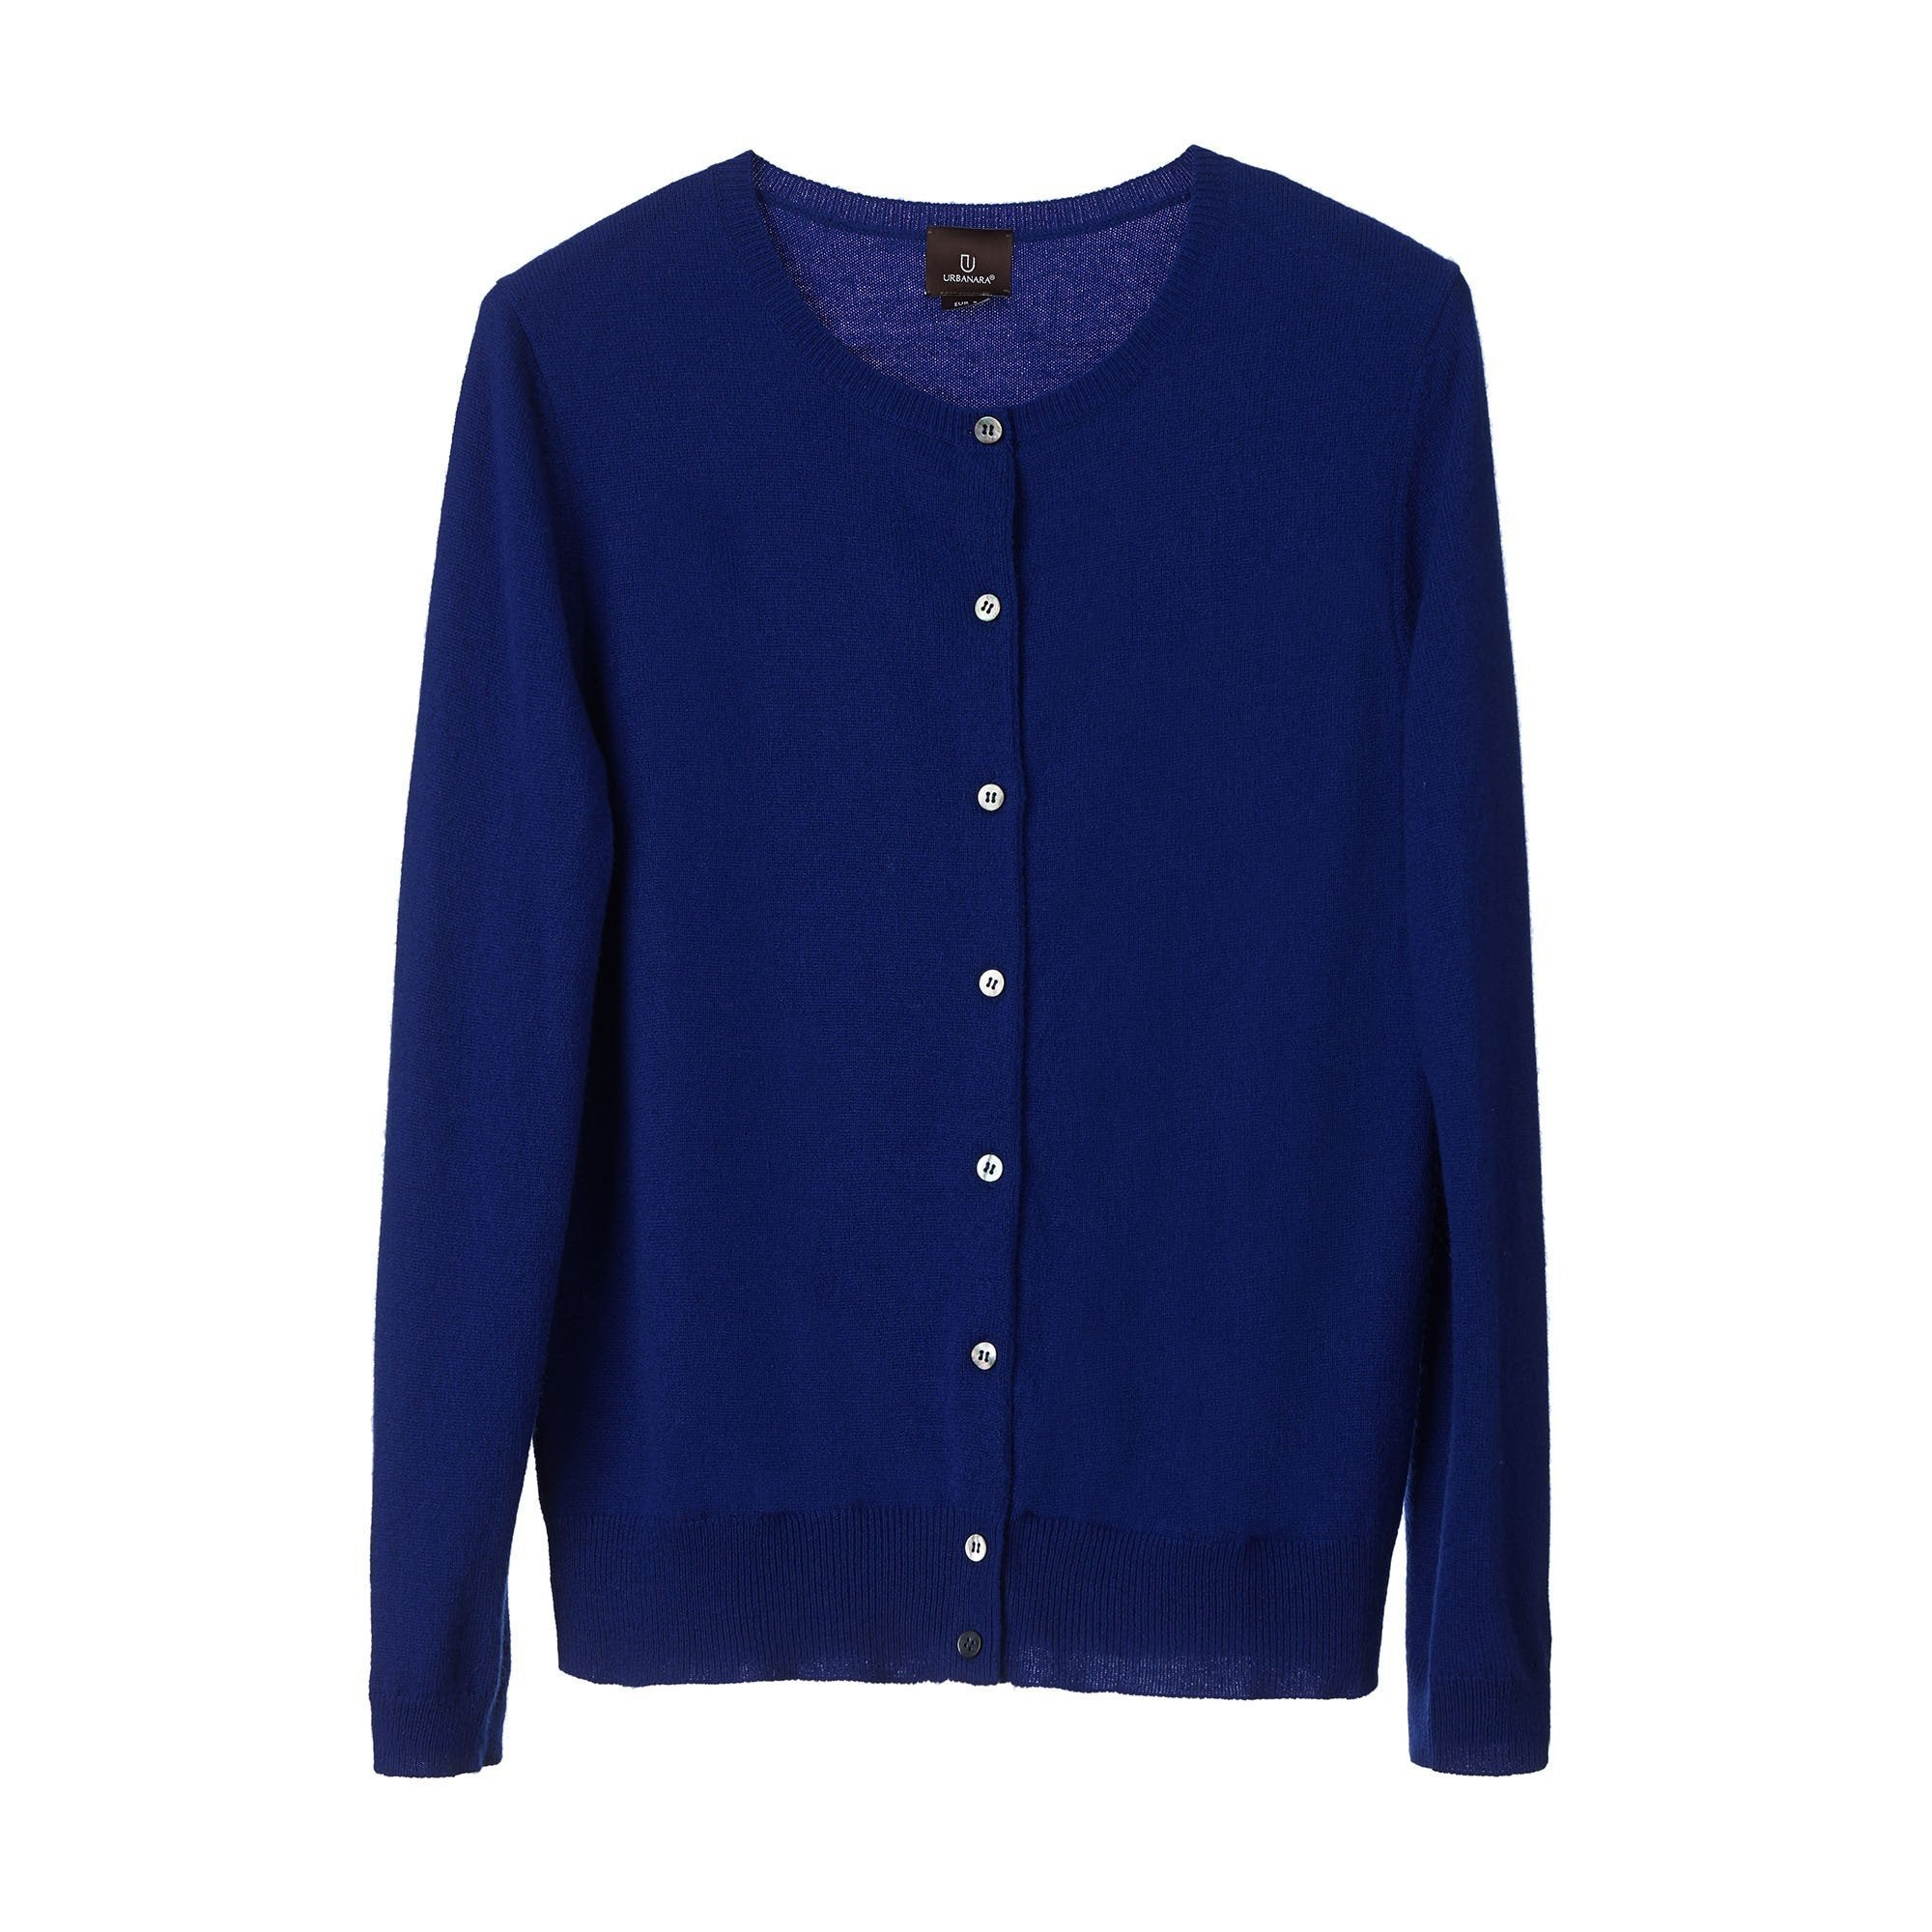 Nora cardigan, royal blue, 50% cashmere wool & 50% wool